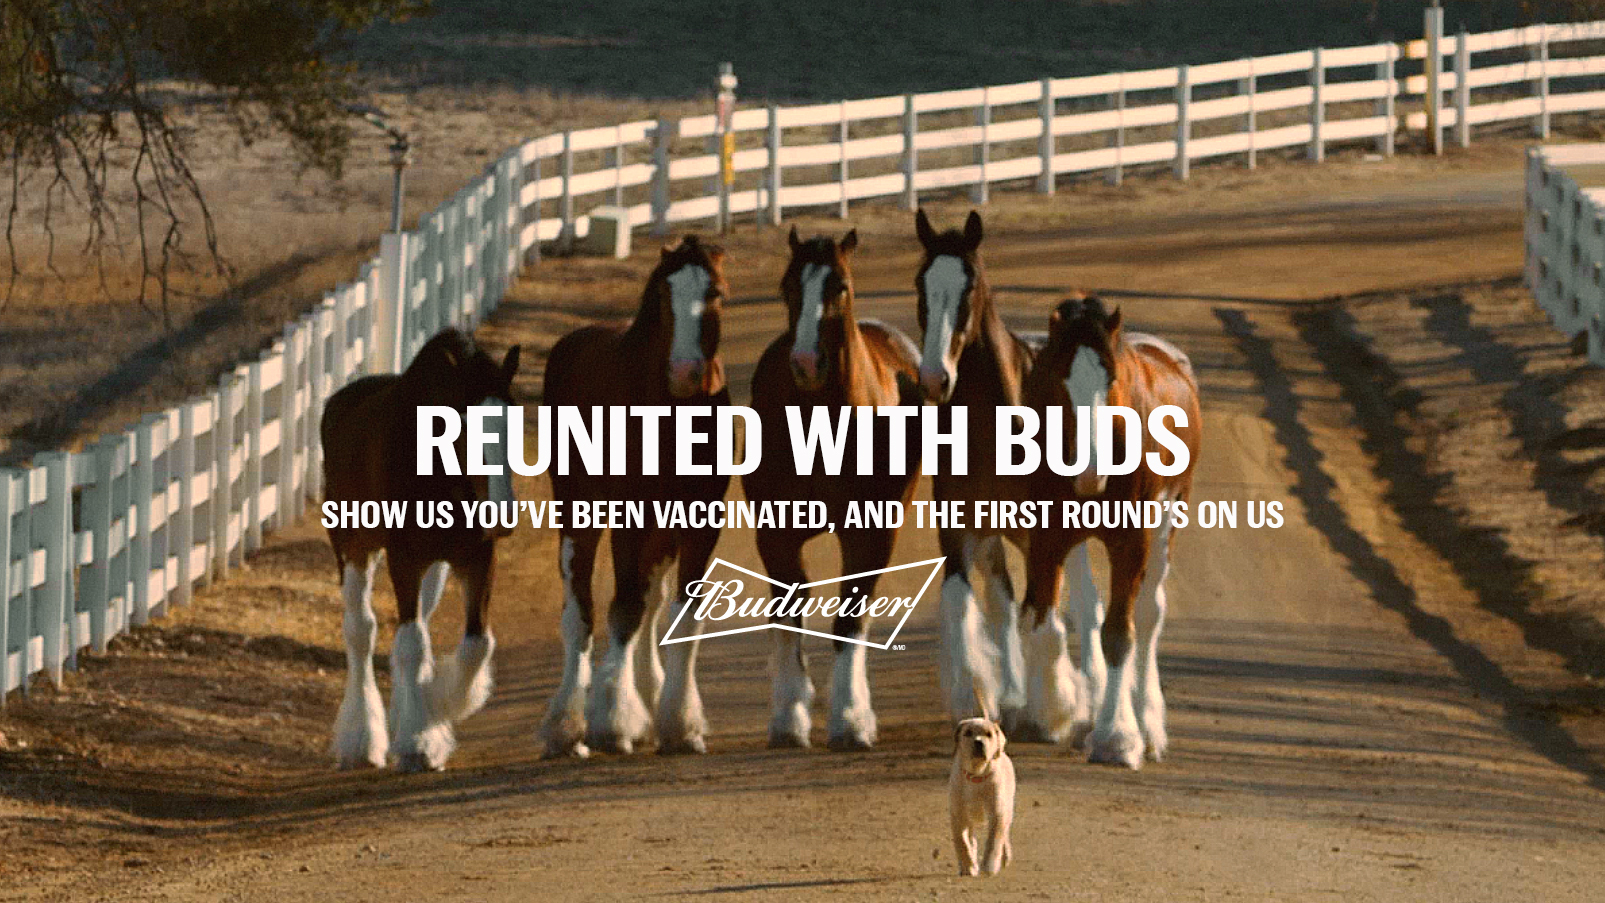 Budweiser free beer COVID